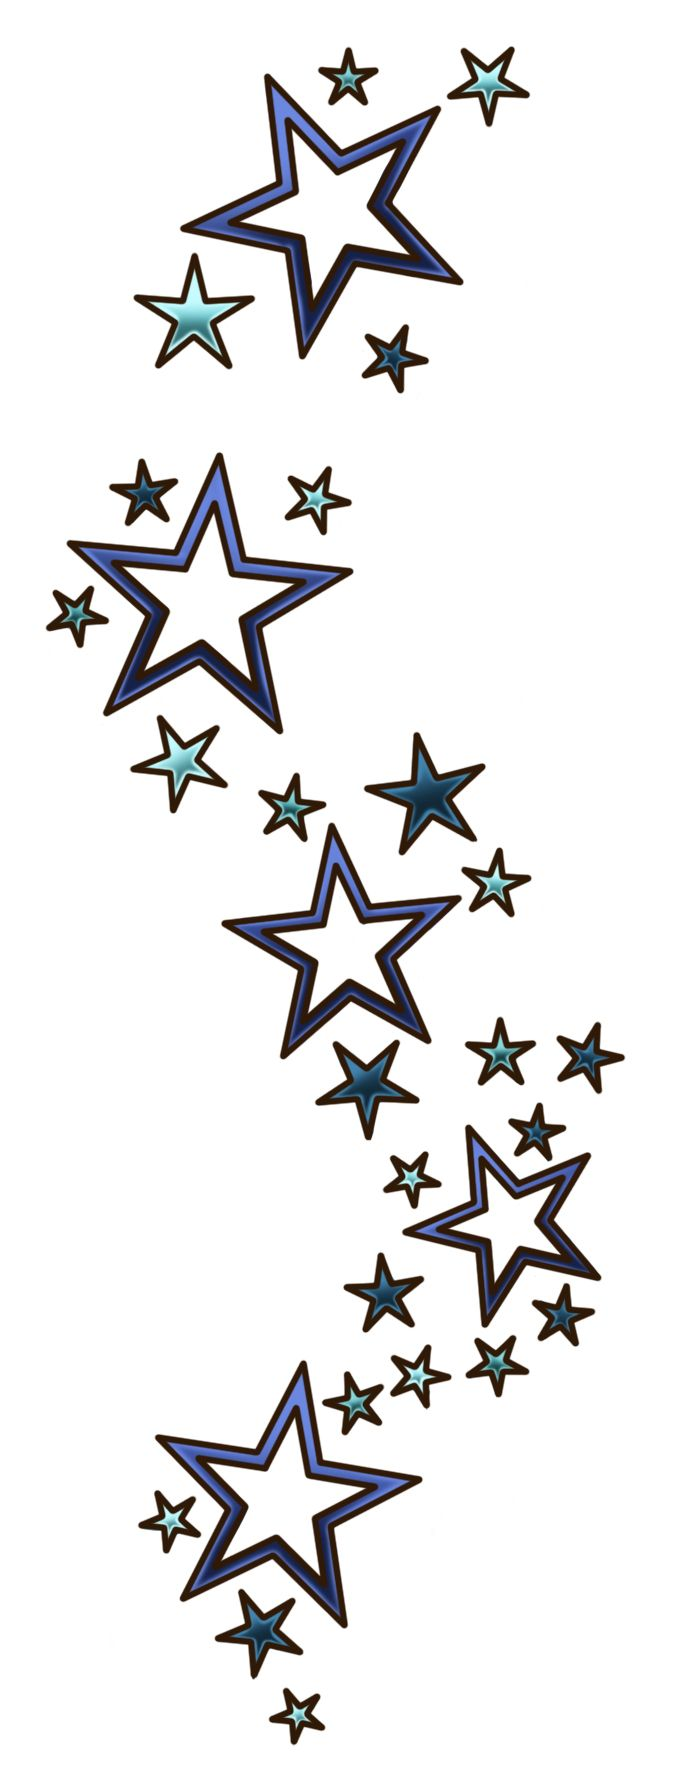 Stars with double borders. keep the negative space, add some color for birthstones of family members. Possible idea to finish my tattoo!